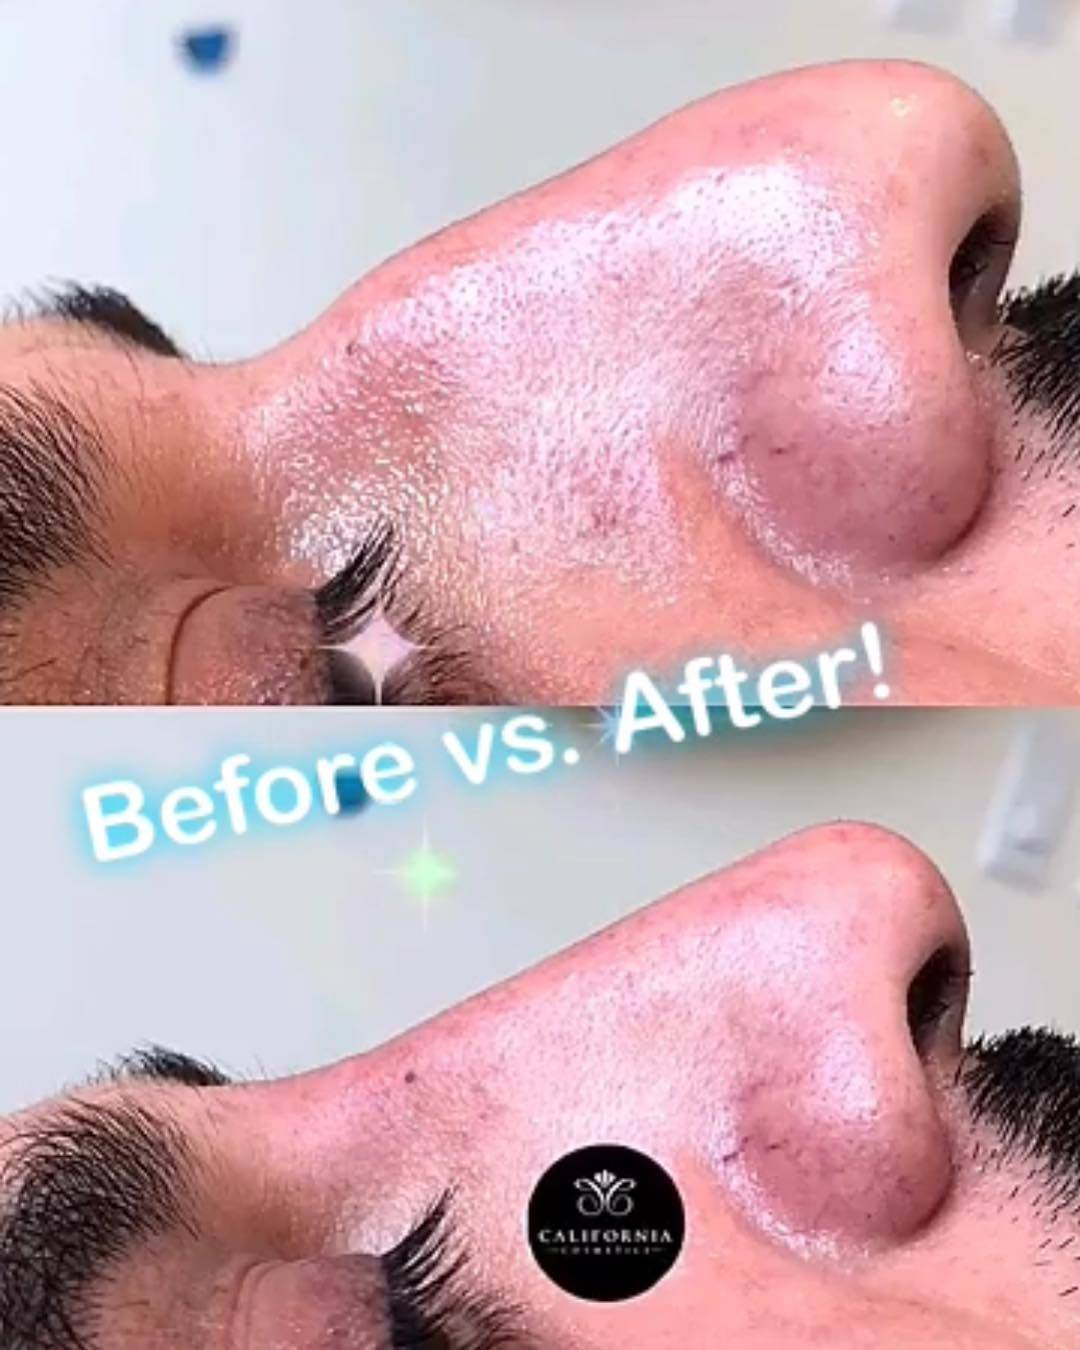 Man's nose before and after nonsurgical nose job